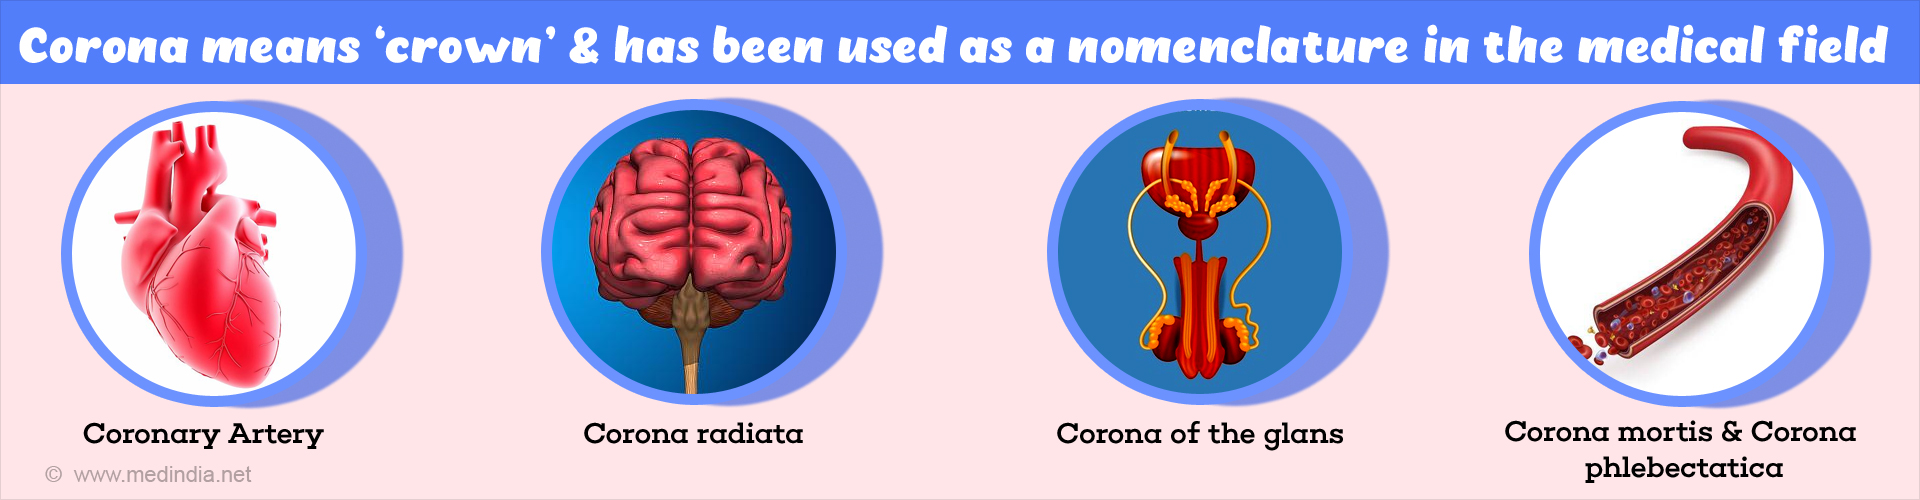 Corona as a Nomenclature in Medical Field